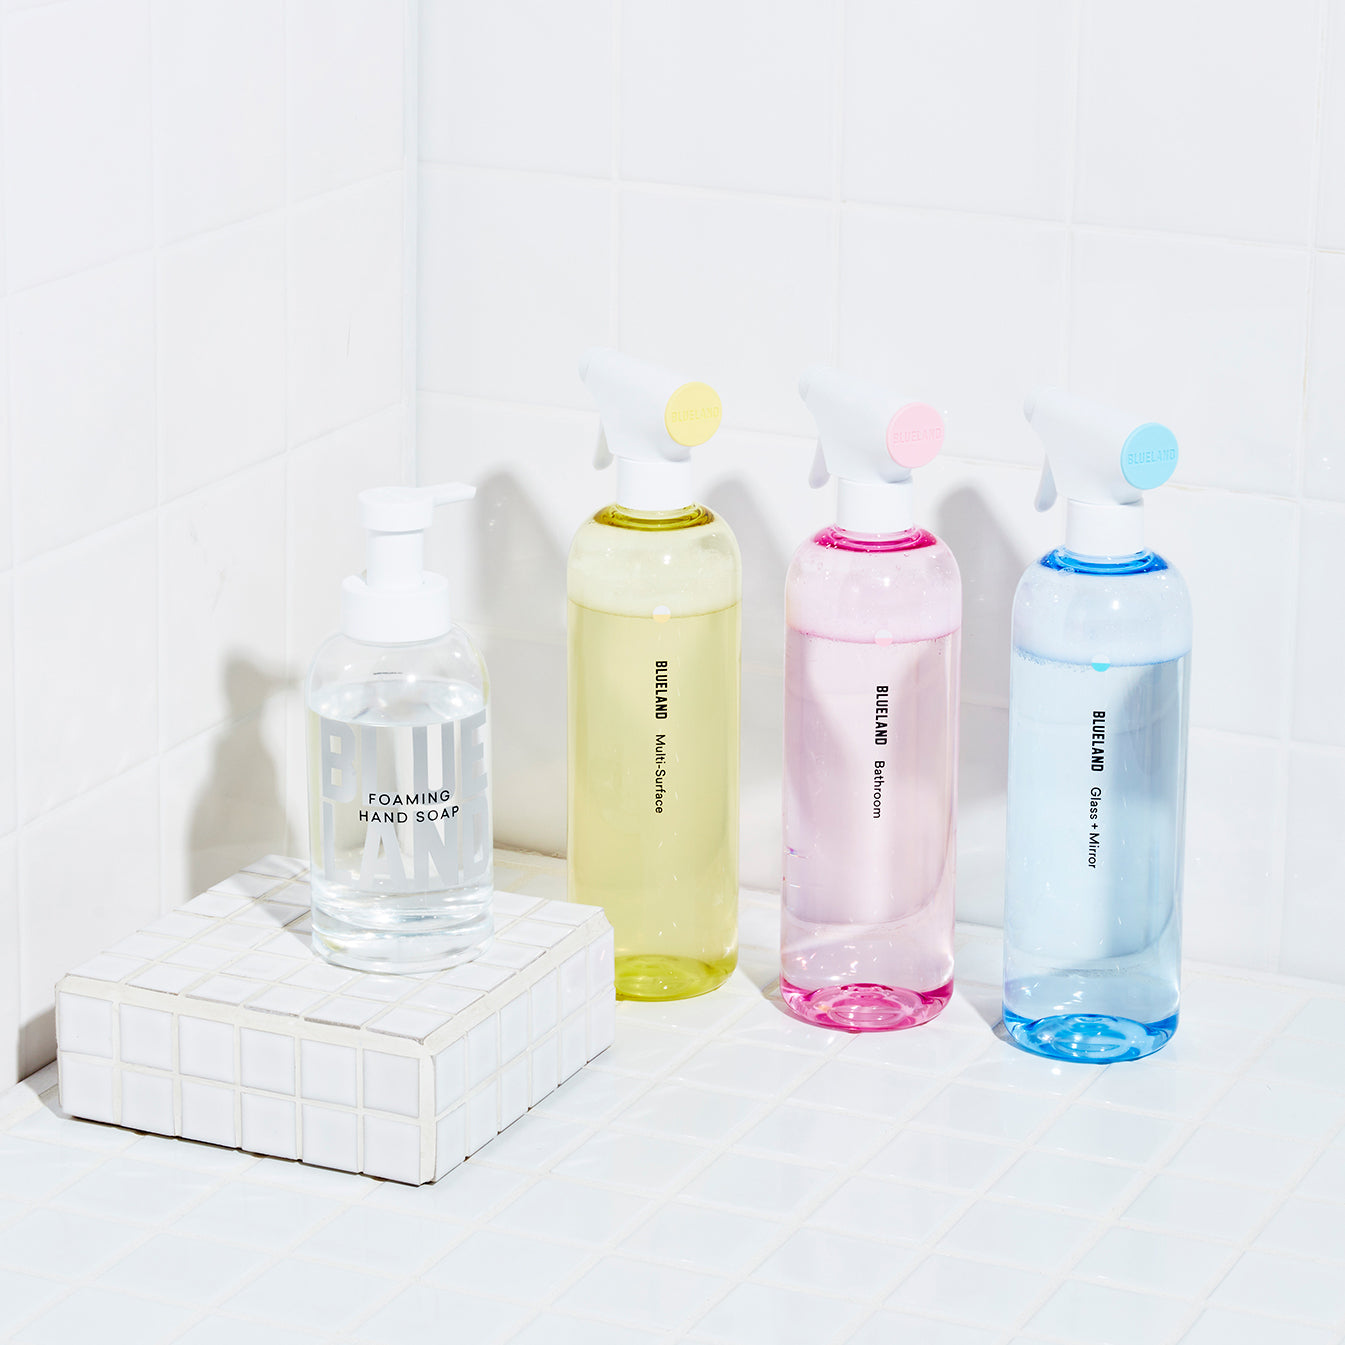 Clean Essentials Kit with one Multi-Surface Forever Bottle, One Glass + Mirror Forever Bottle and one Bathroom Forever Bottle and a glass Foaming Hand Soap bottle all placed on a white titled counter